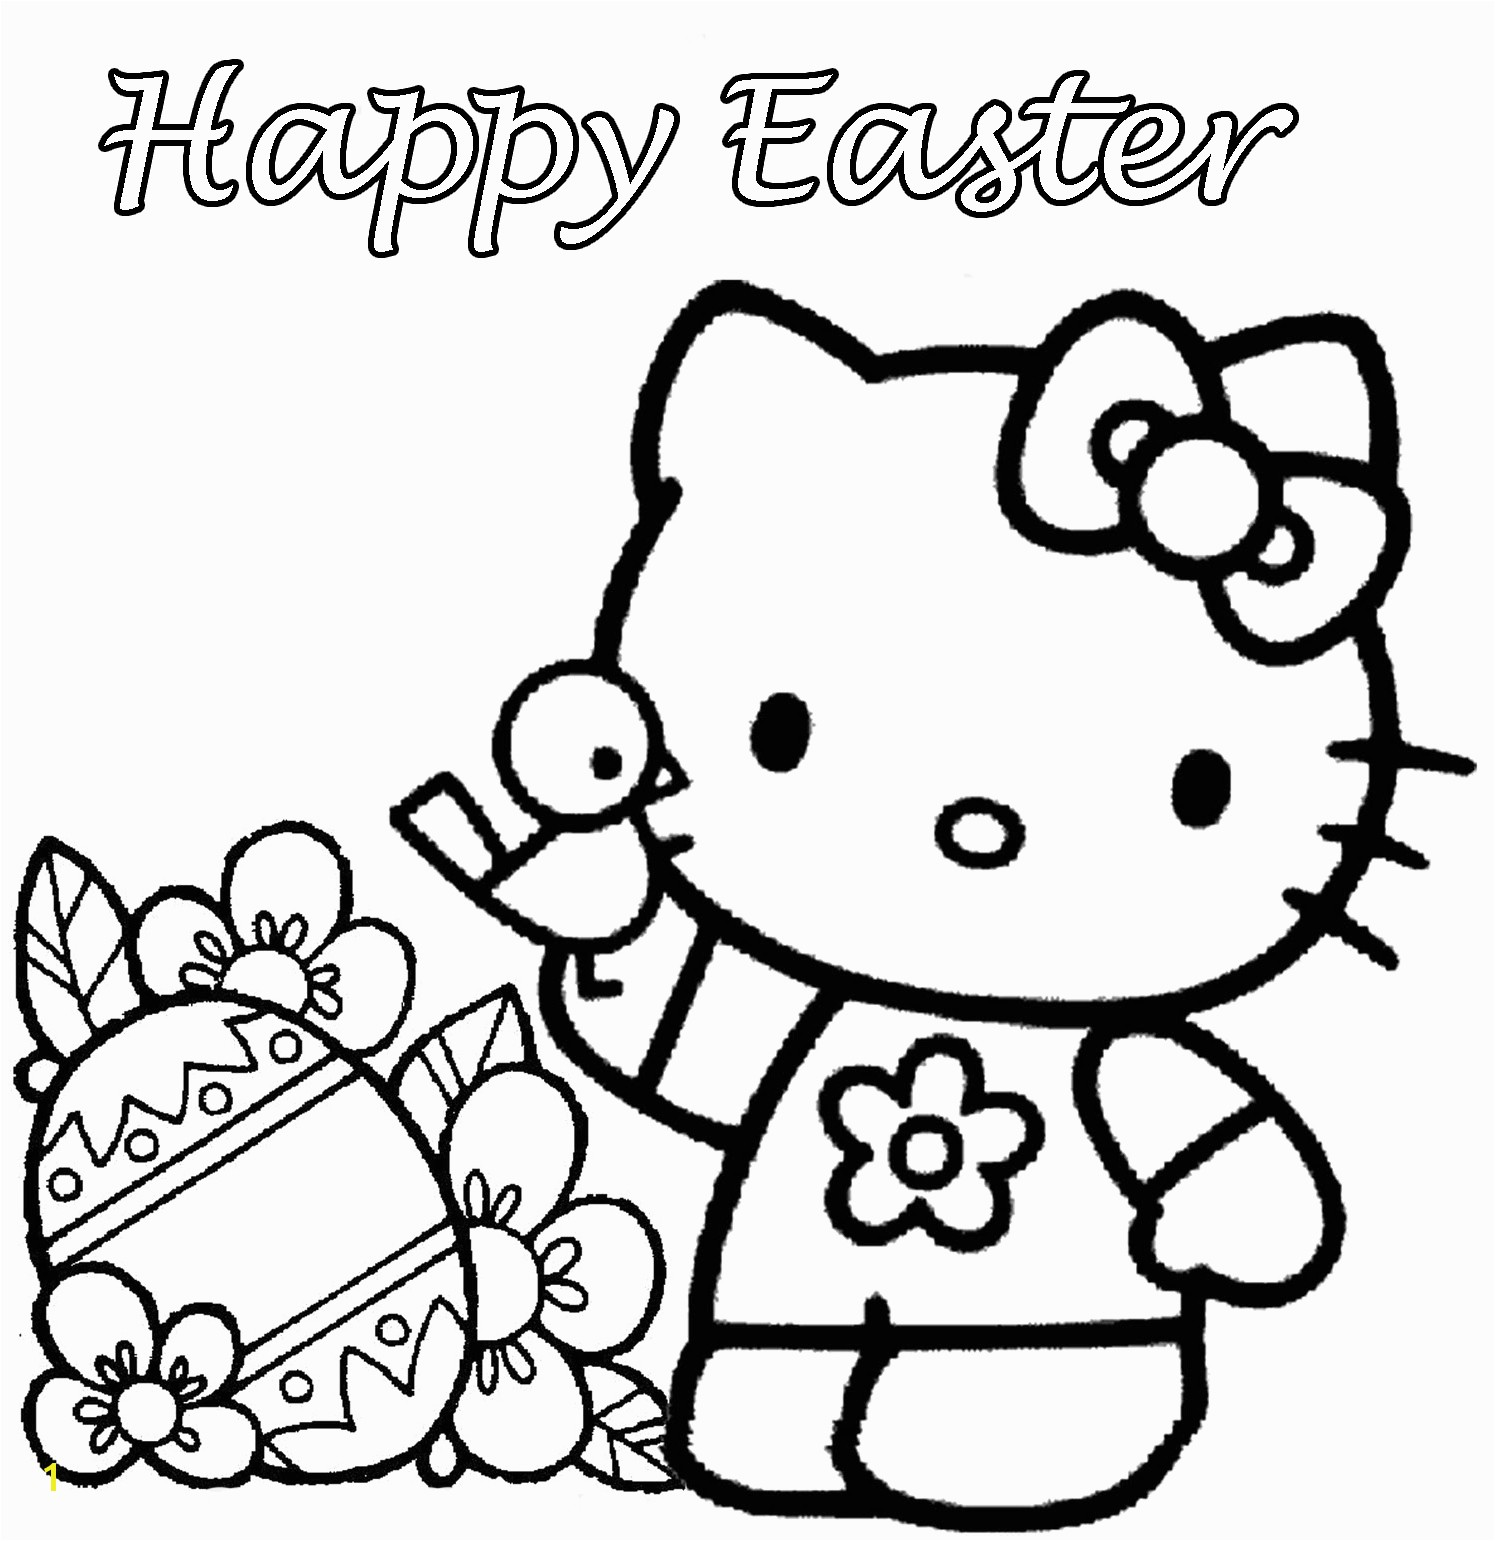 Free Coloring Pages For Easter Printable Ethicstechorg